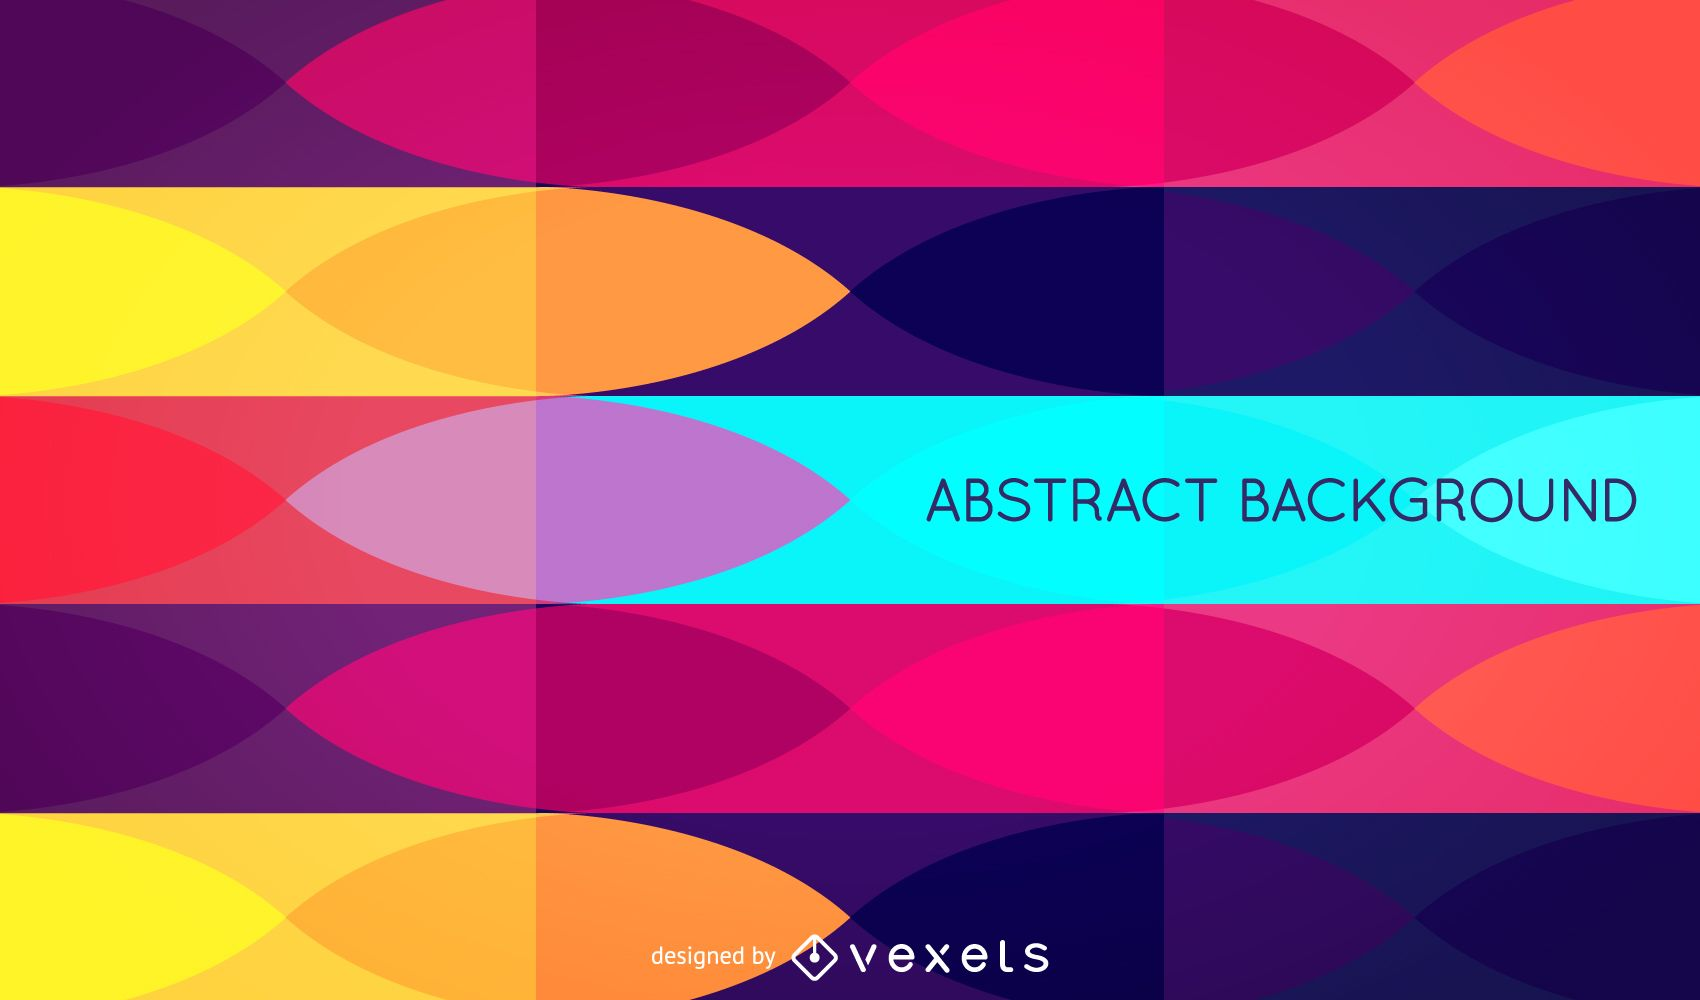 Abstract retro pattern background